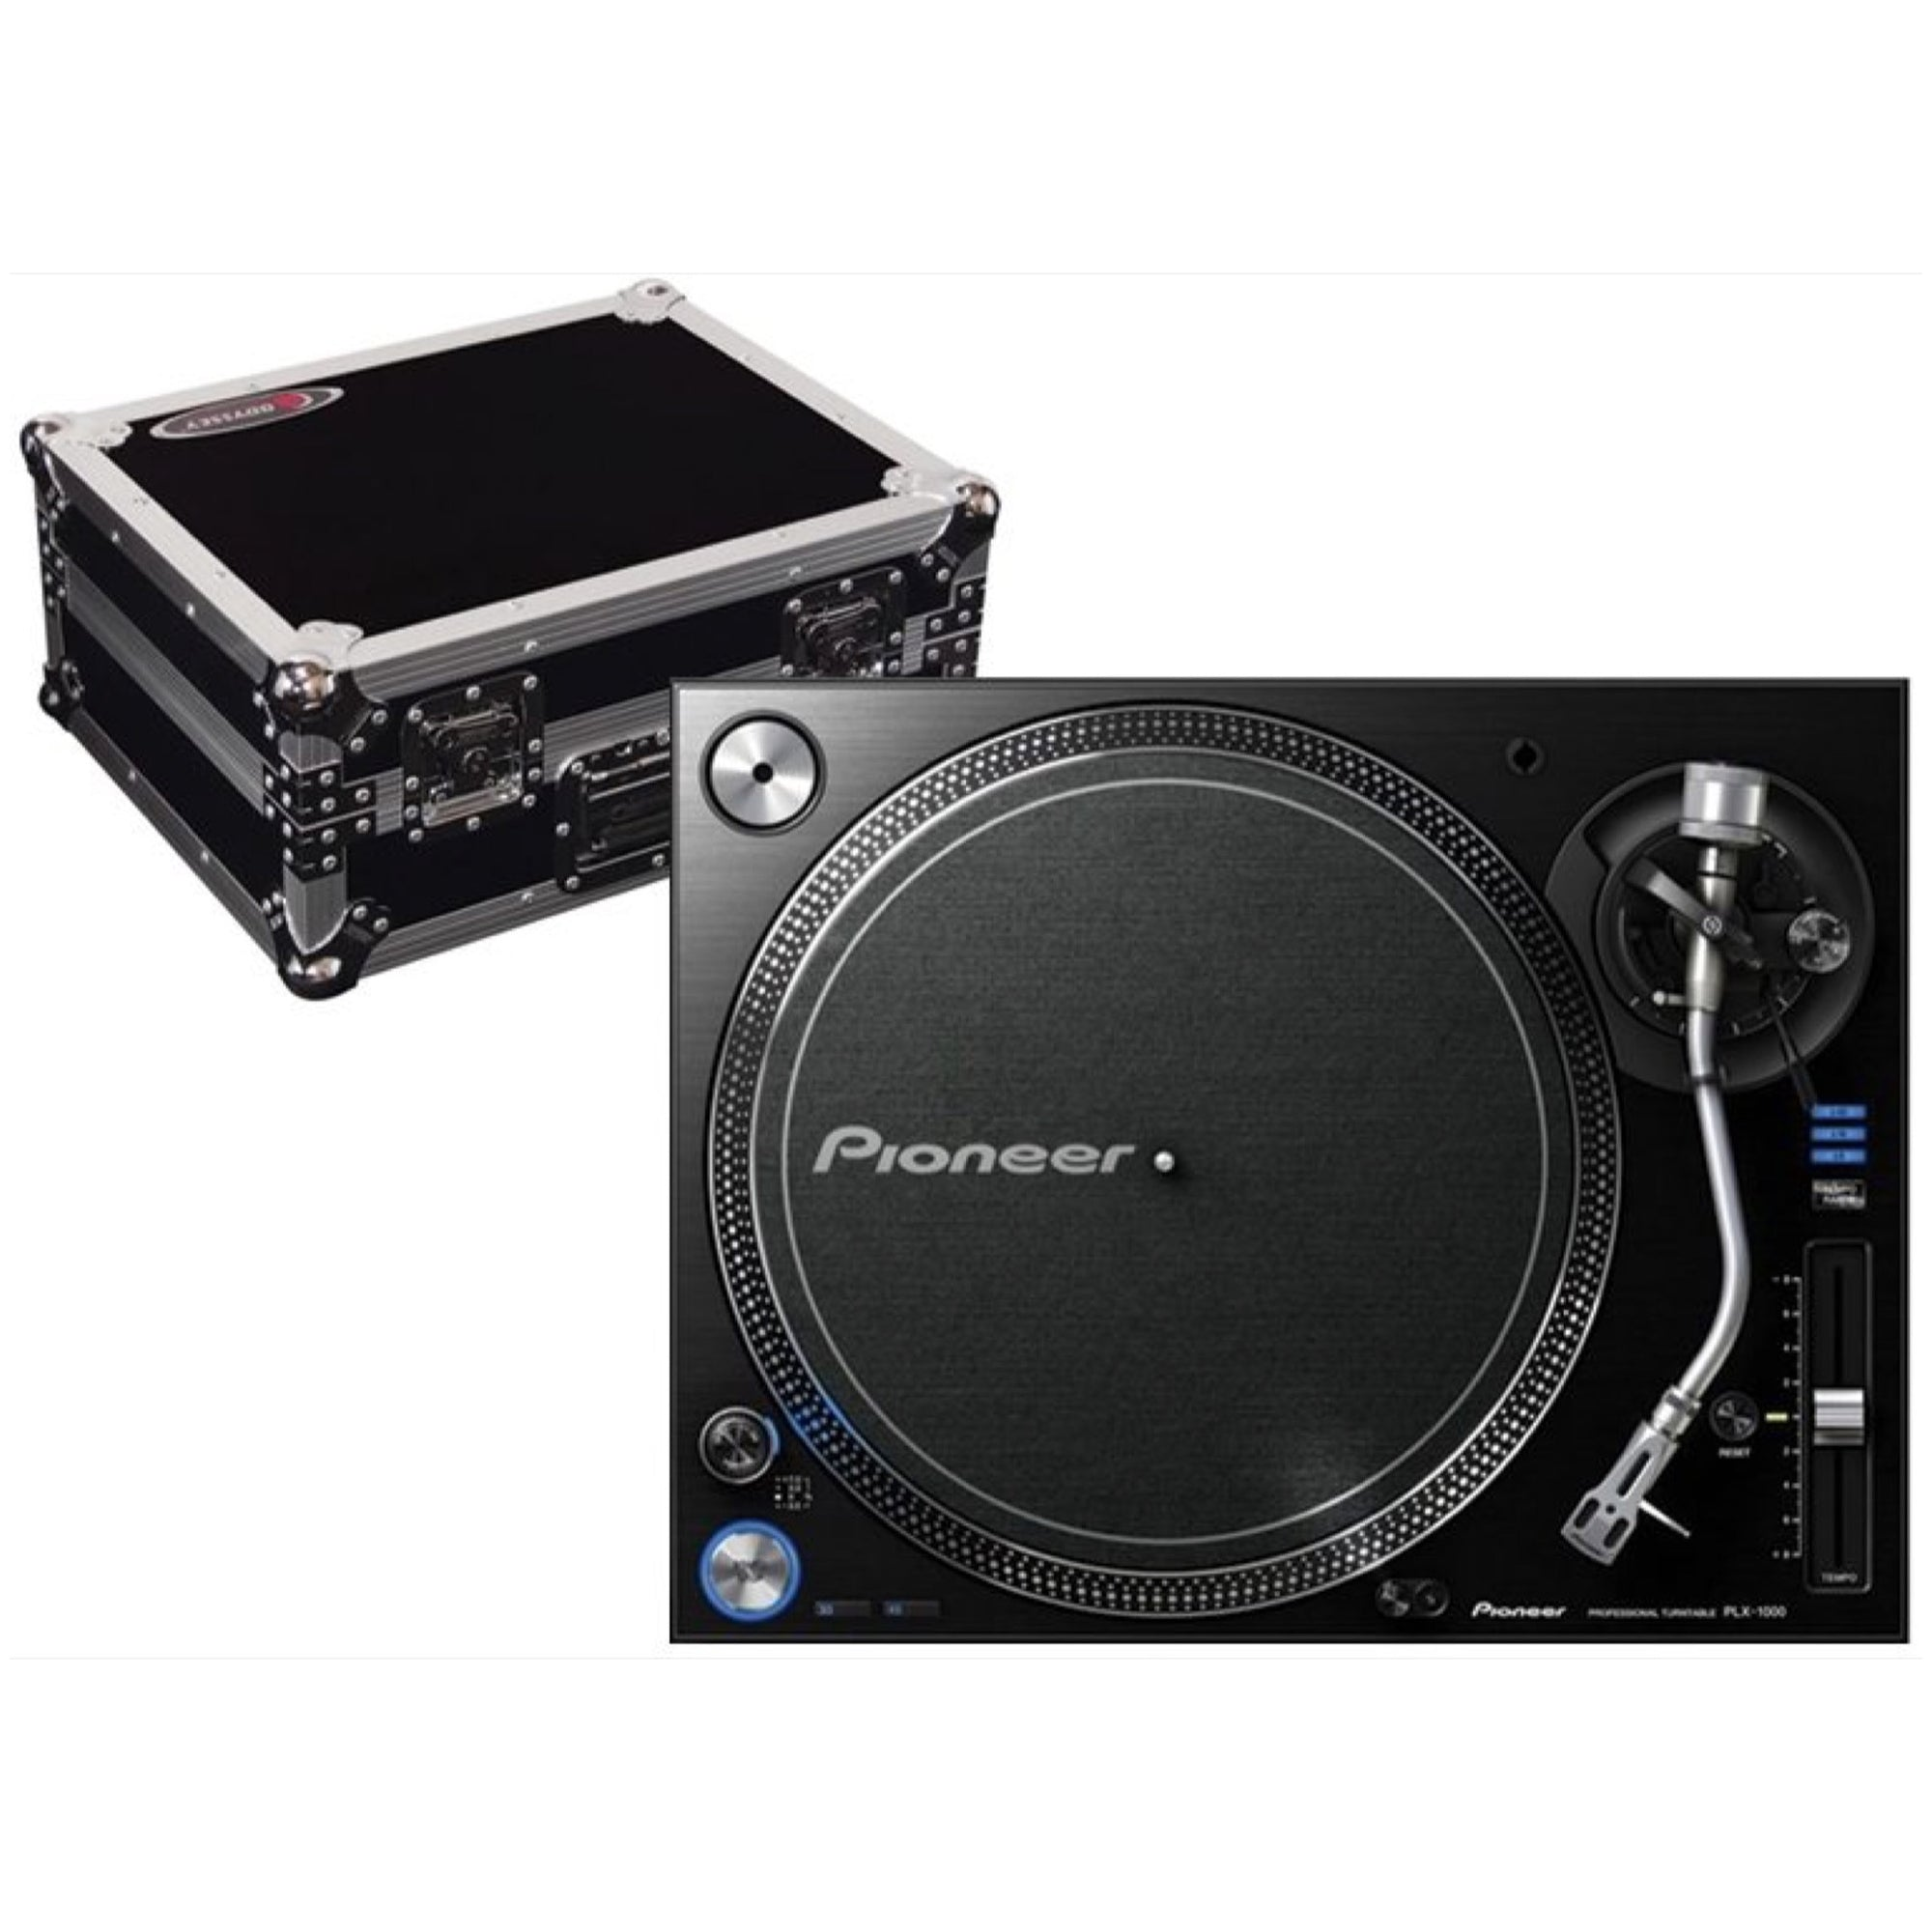 Pioneer DJ PLX-1000 Direct Drive Turntable, with Odyssey FZ1200 Case